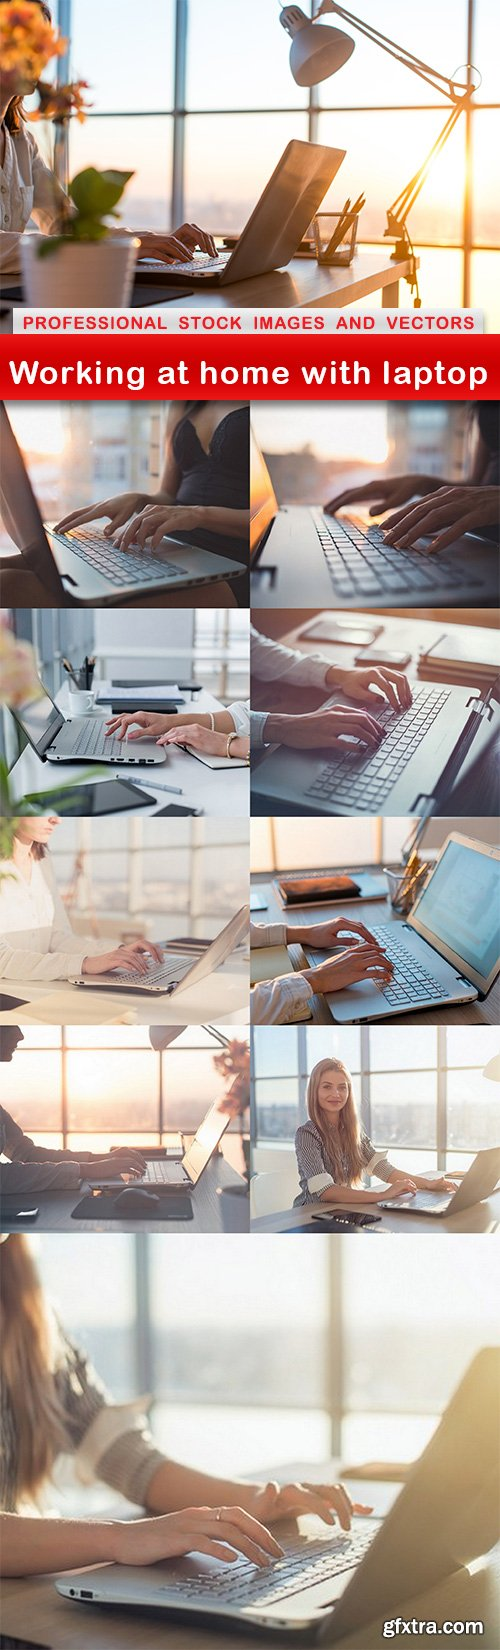 Working at home with laptop - 10 UHQ JPEG